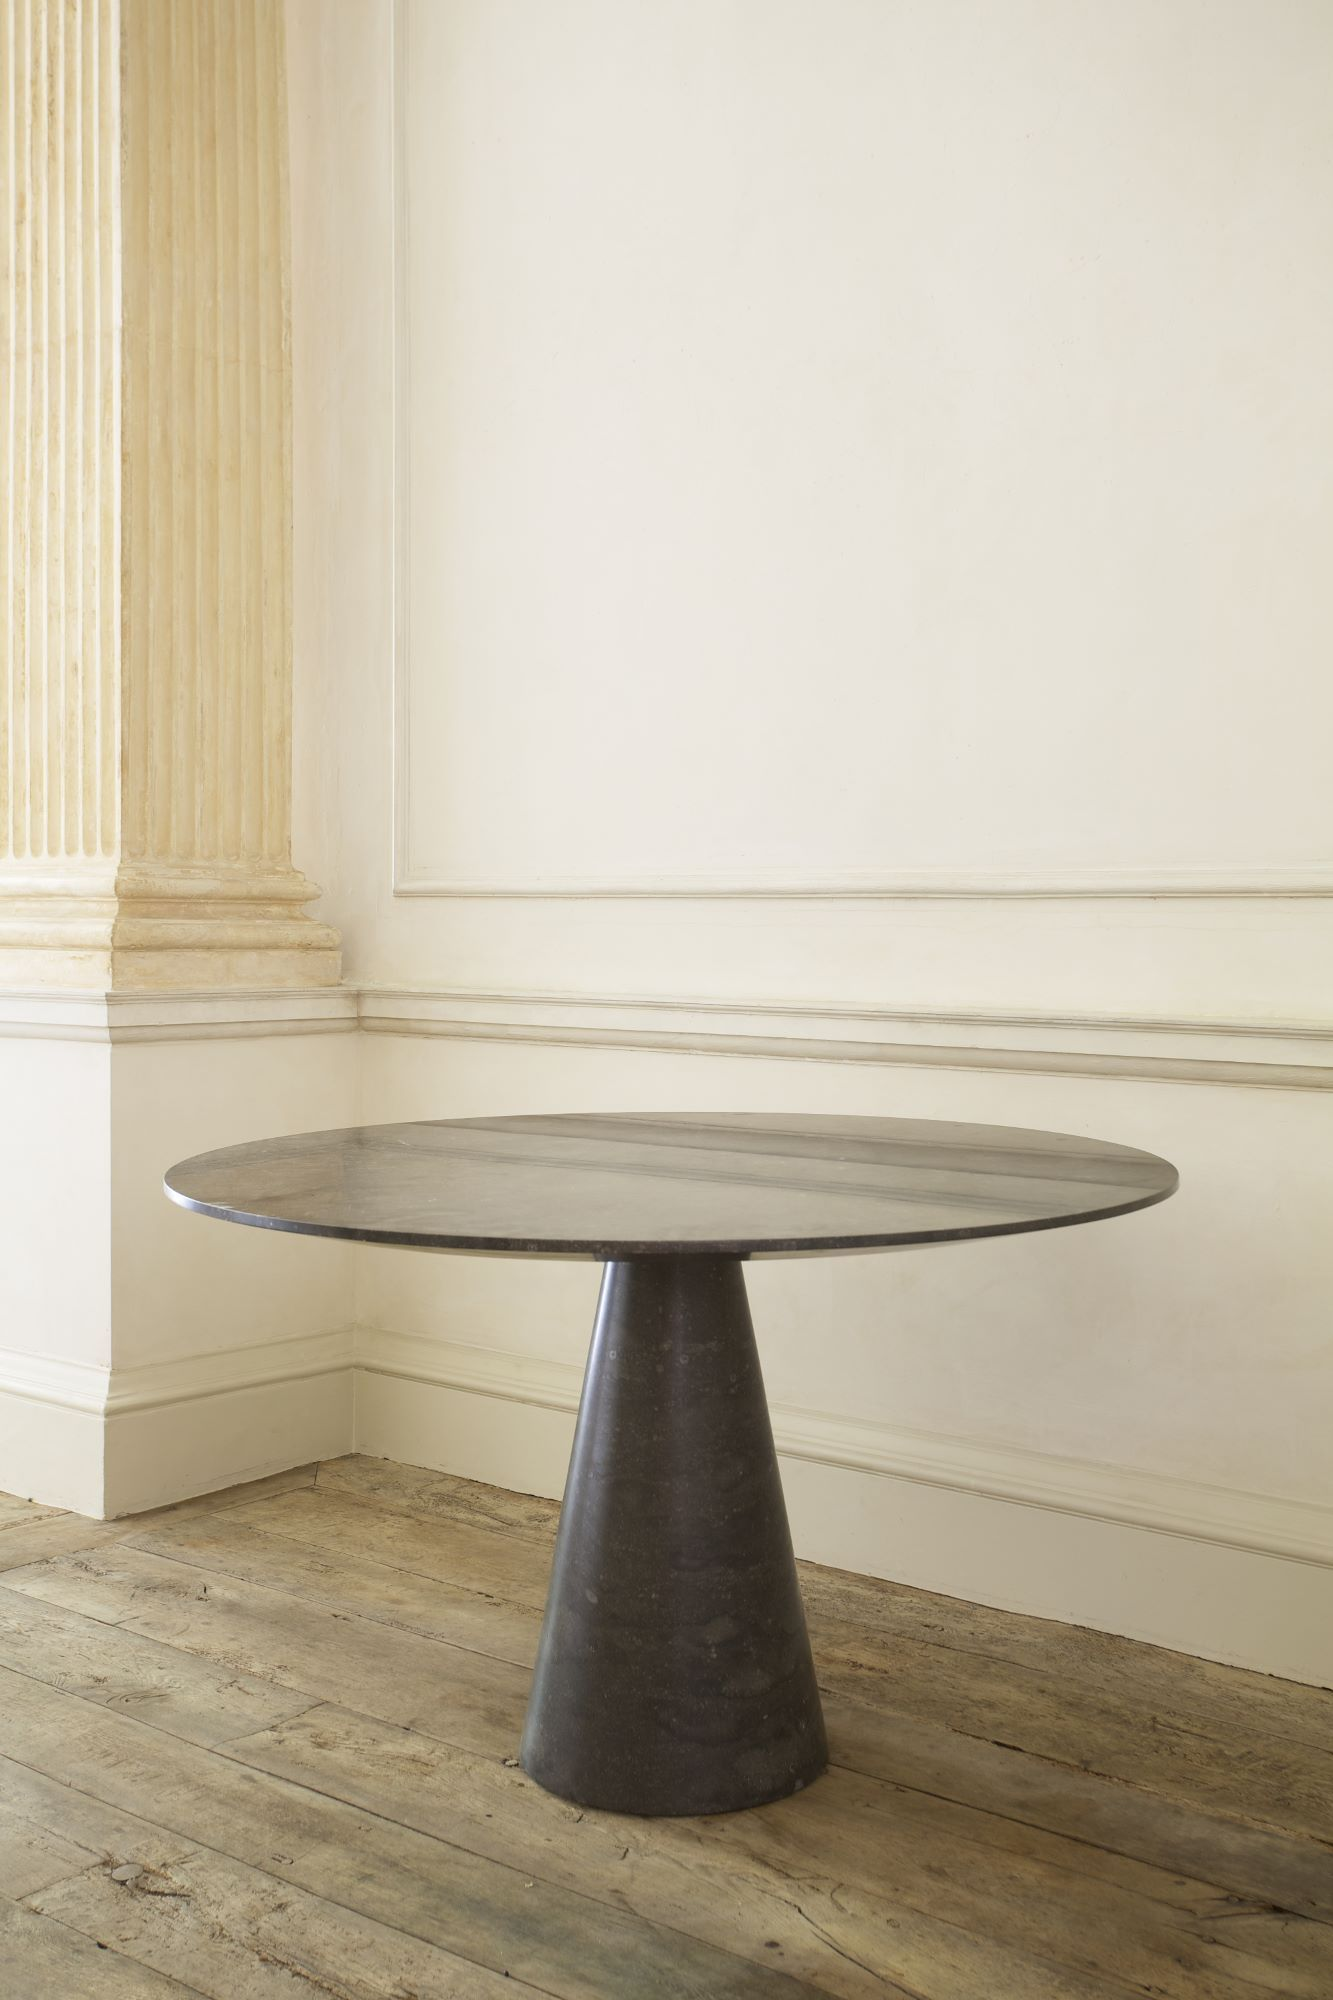 The Kilkenny Marble Centre Table by Rose Uniacke | Rose Uniacke ...